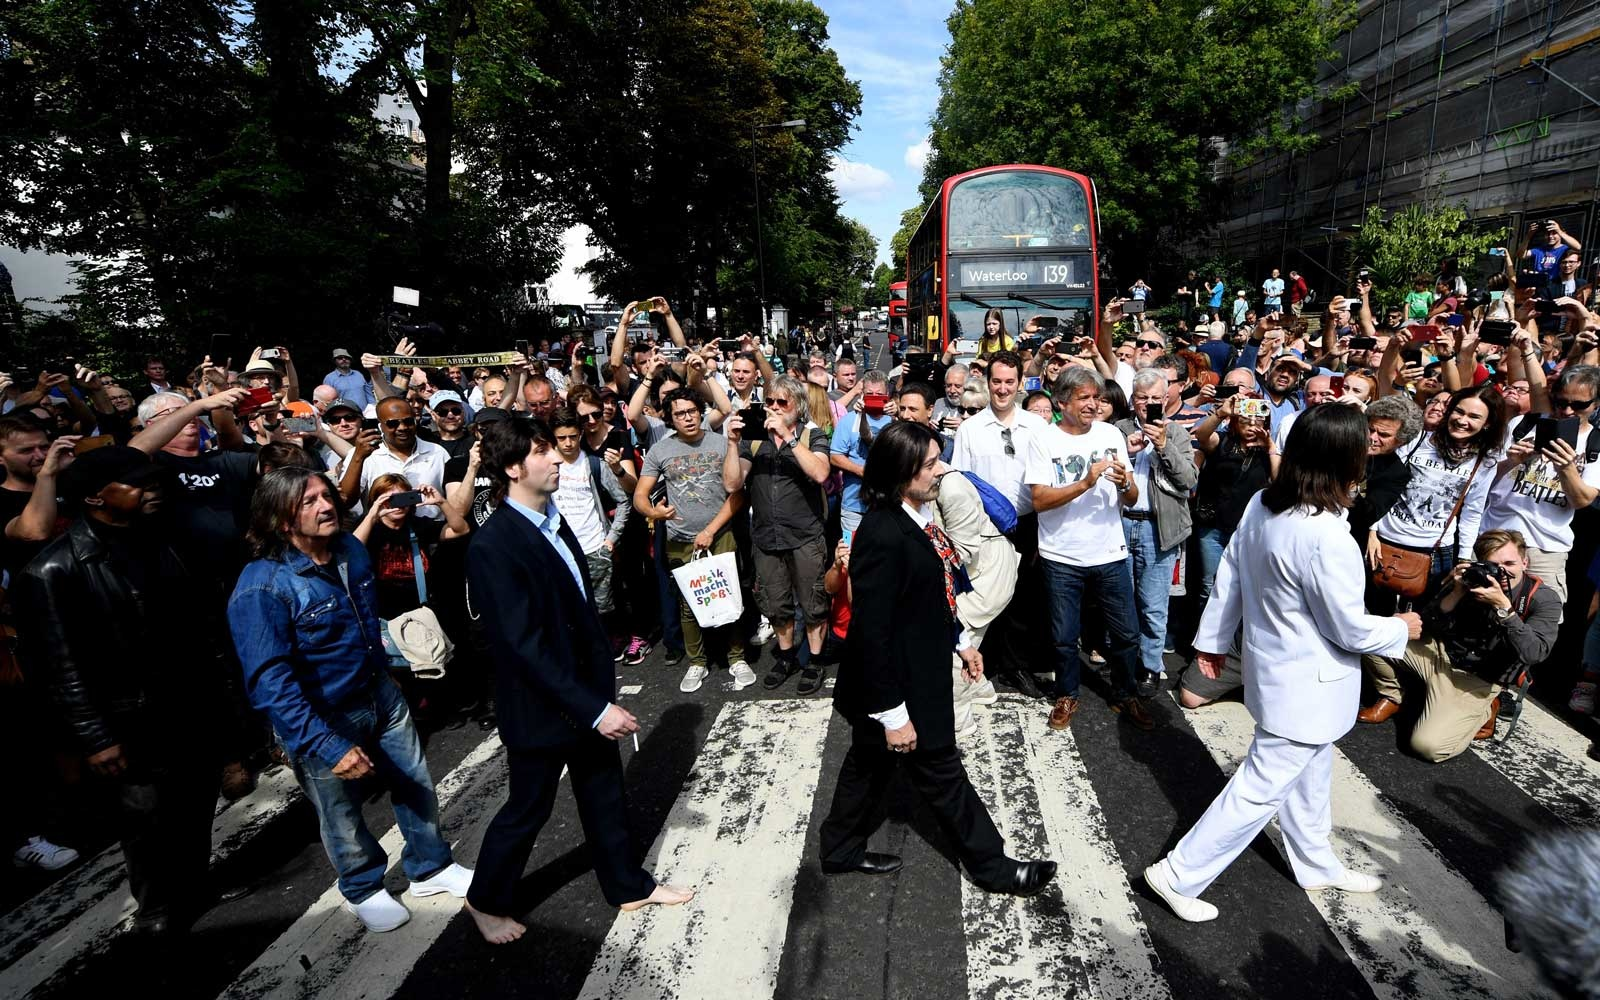 Beatles Fans Celebrate 50 Years of Iconic Abbey Road Photo